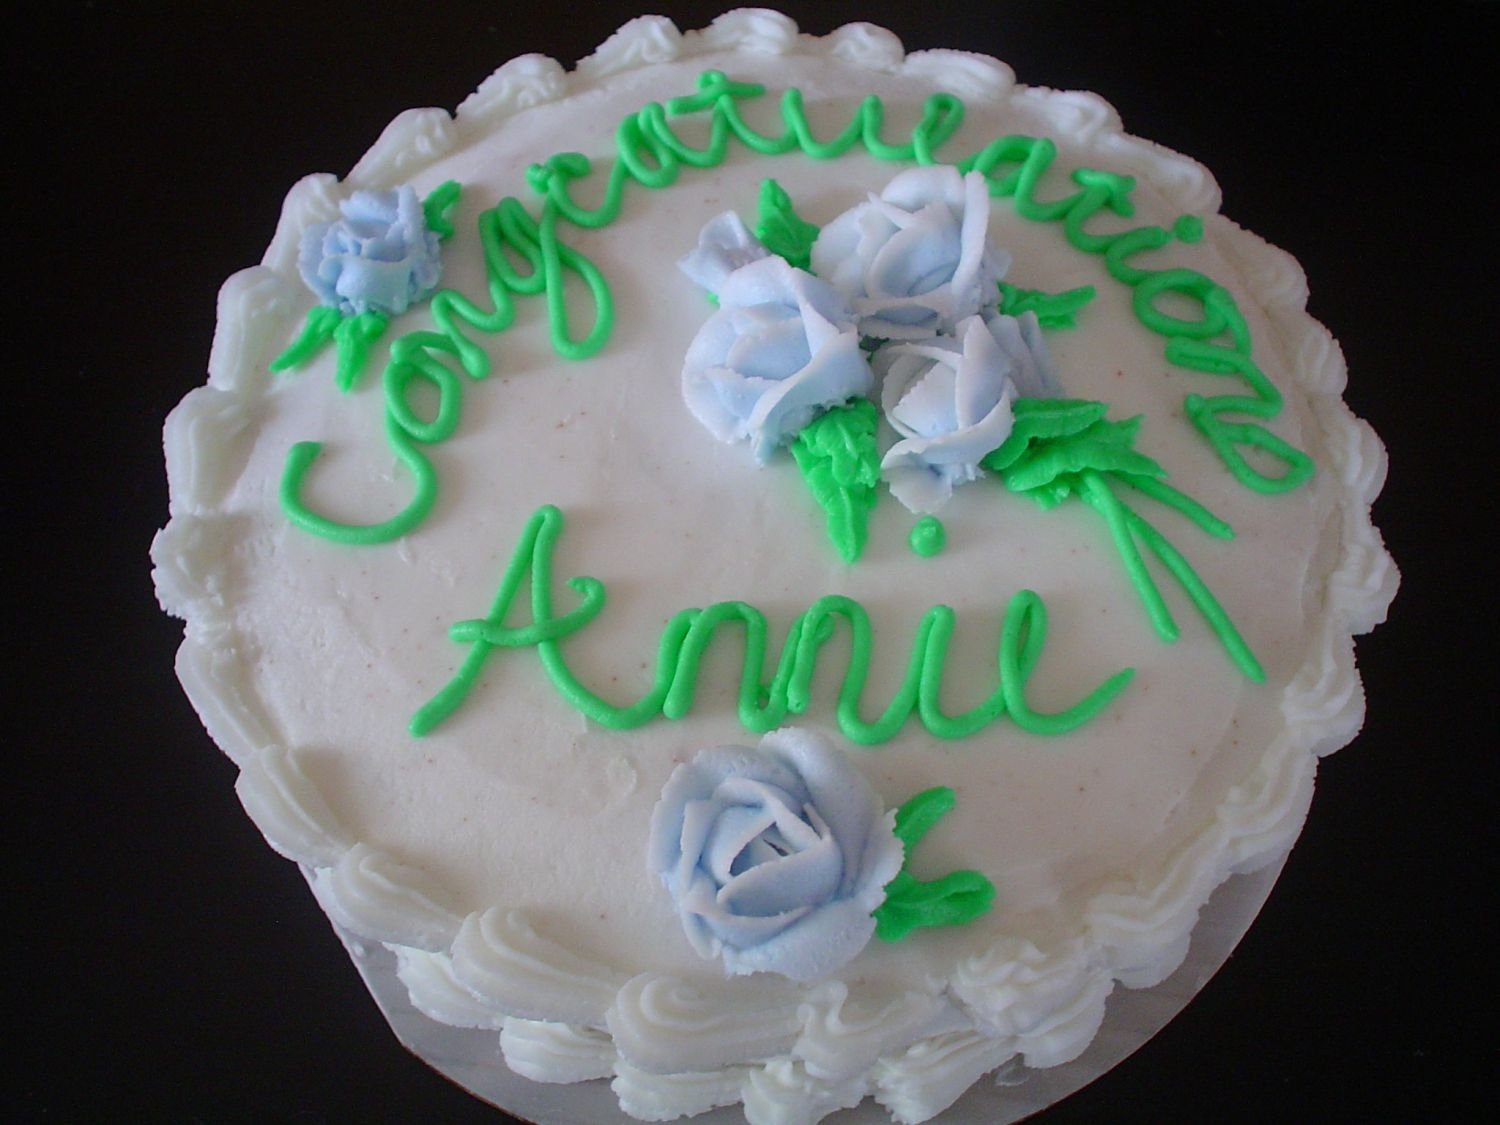 Annie's Celebration Cake In my last cake decorating class, we were to decorate however we wanted. Chocolate cake with buttercream icing. I was very happy with how...